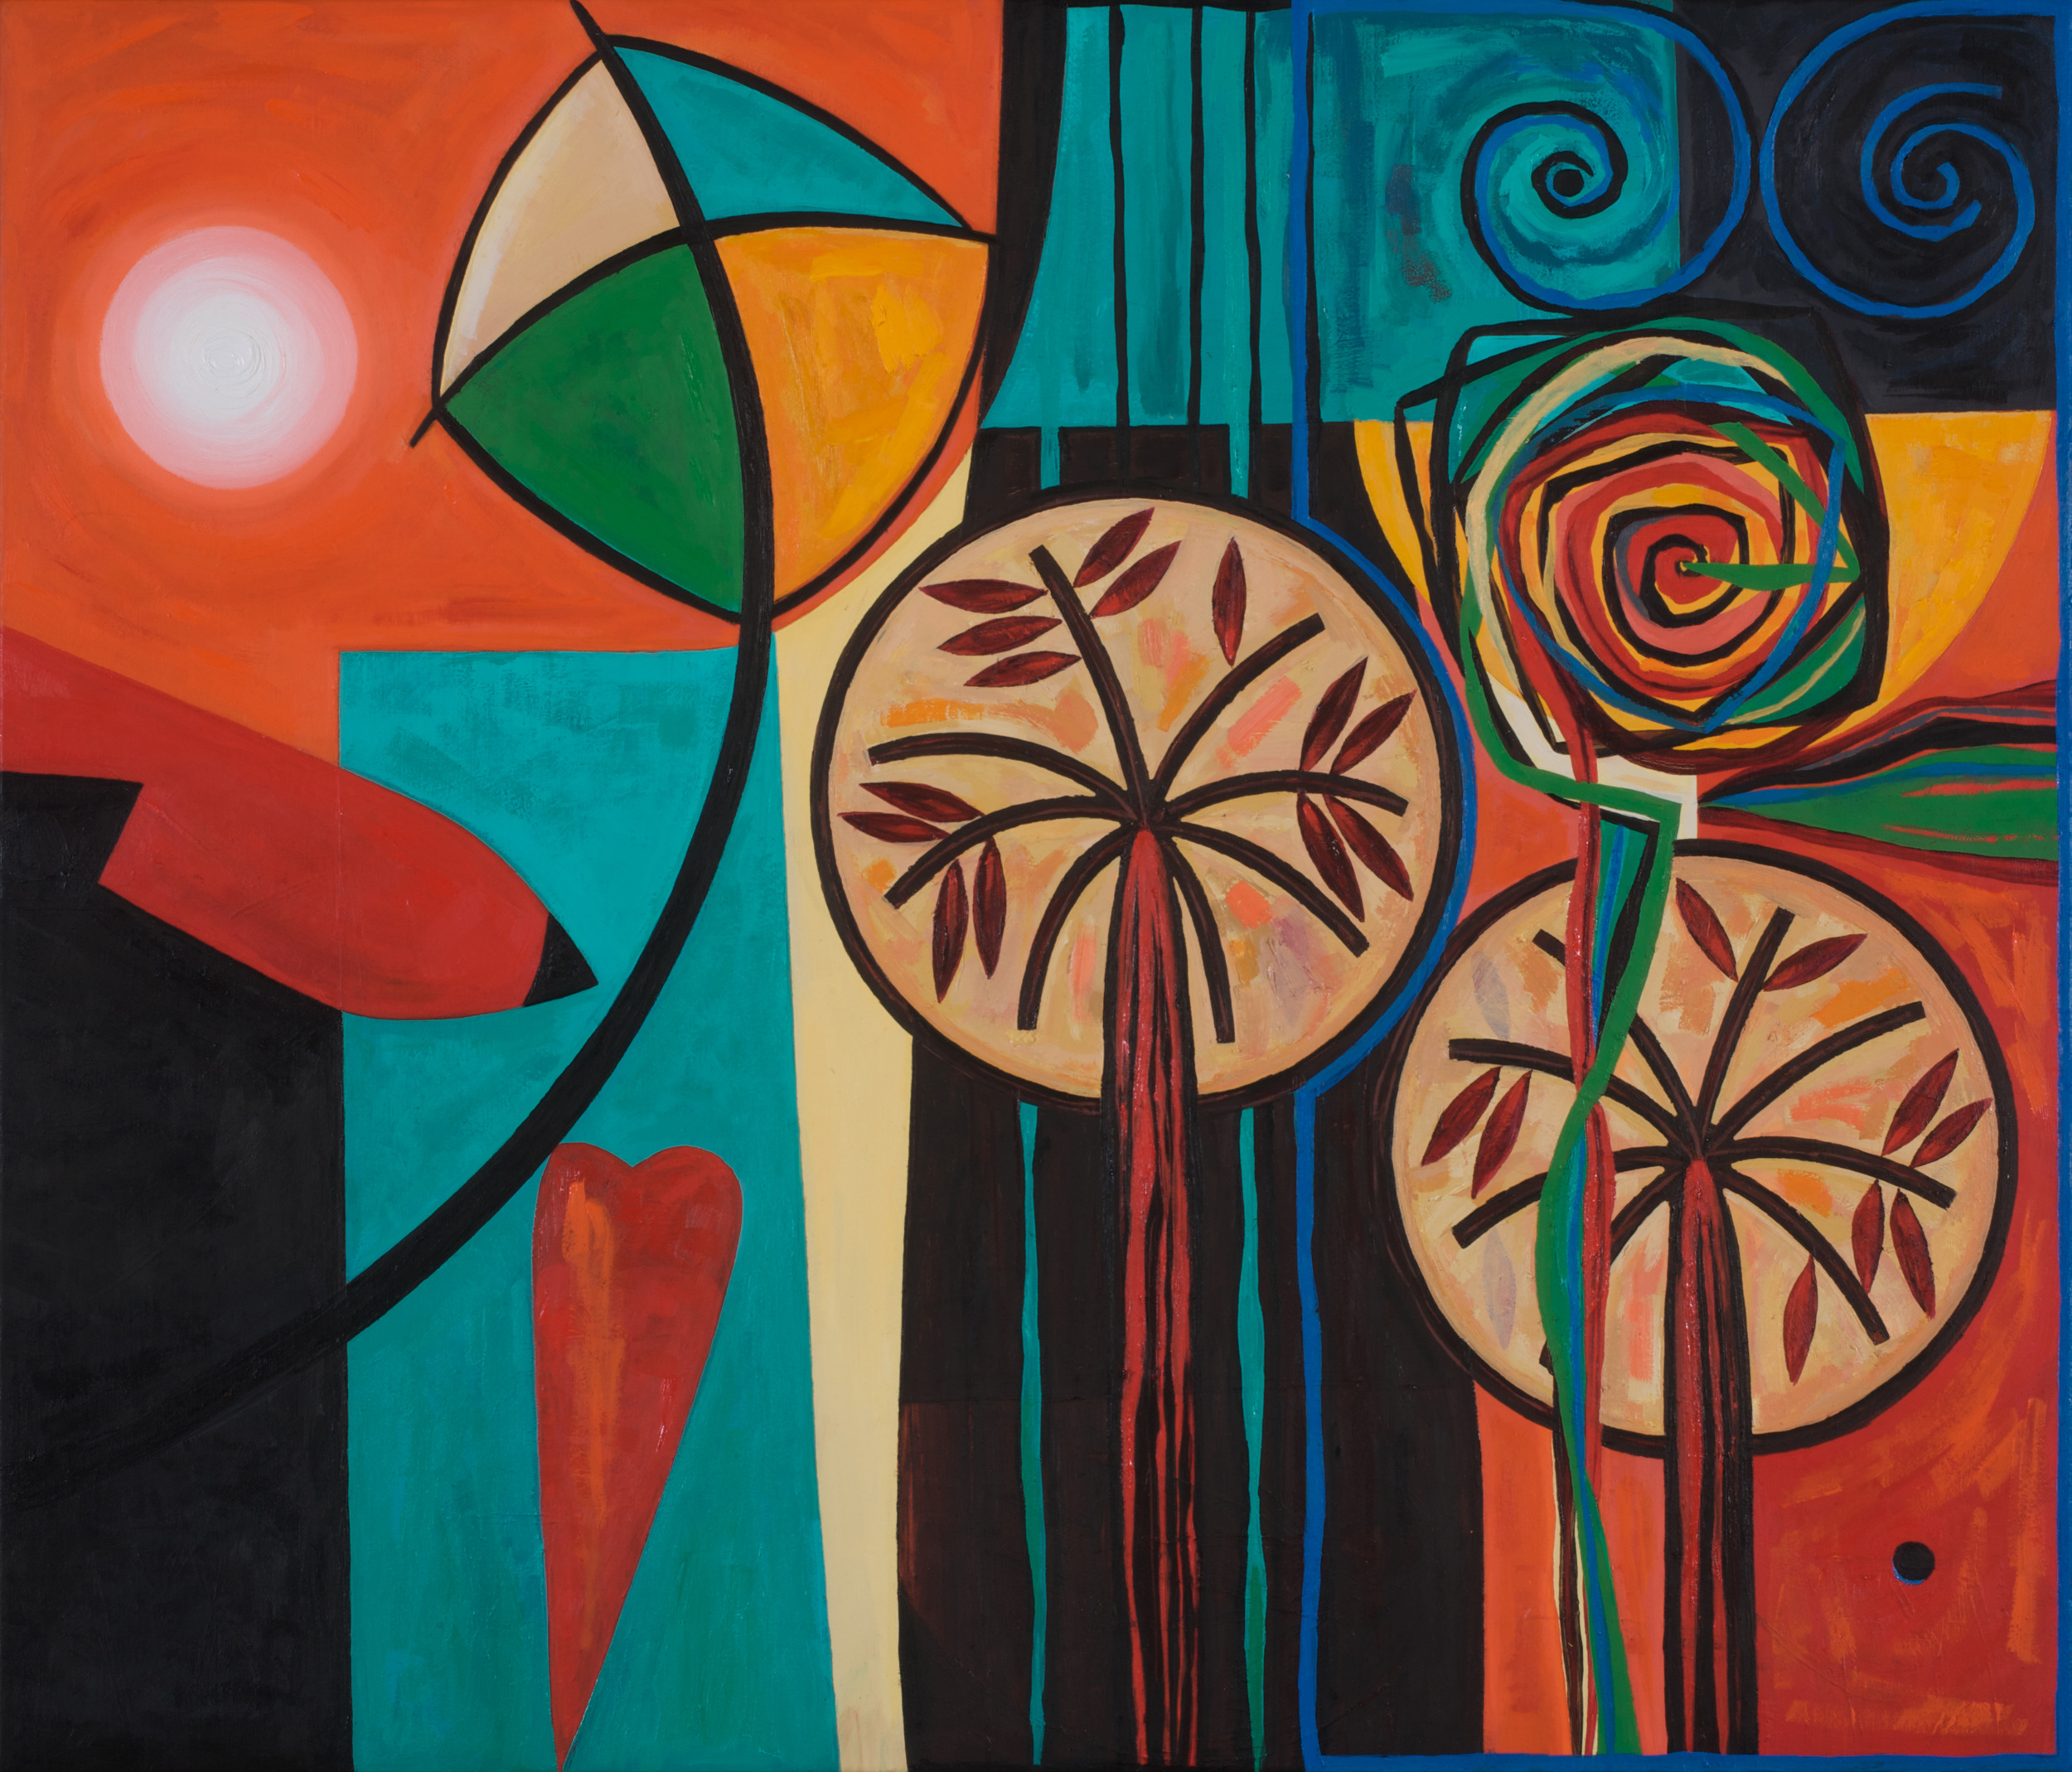 Tahira    Kites & Shattered Dreams  Oil on canvas 60x70cm 2008  Barjeel Collection  UAE